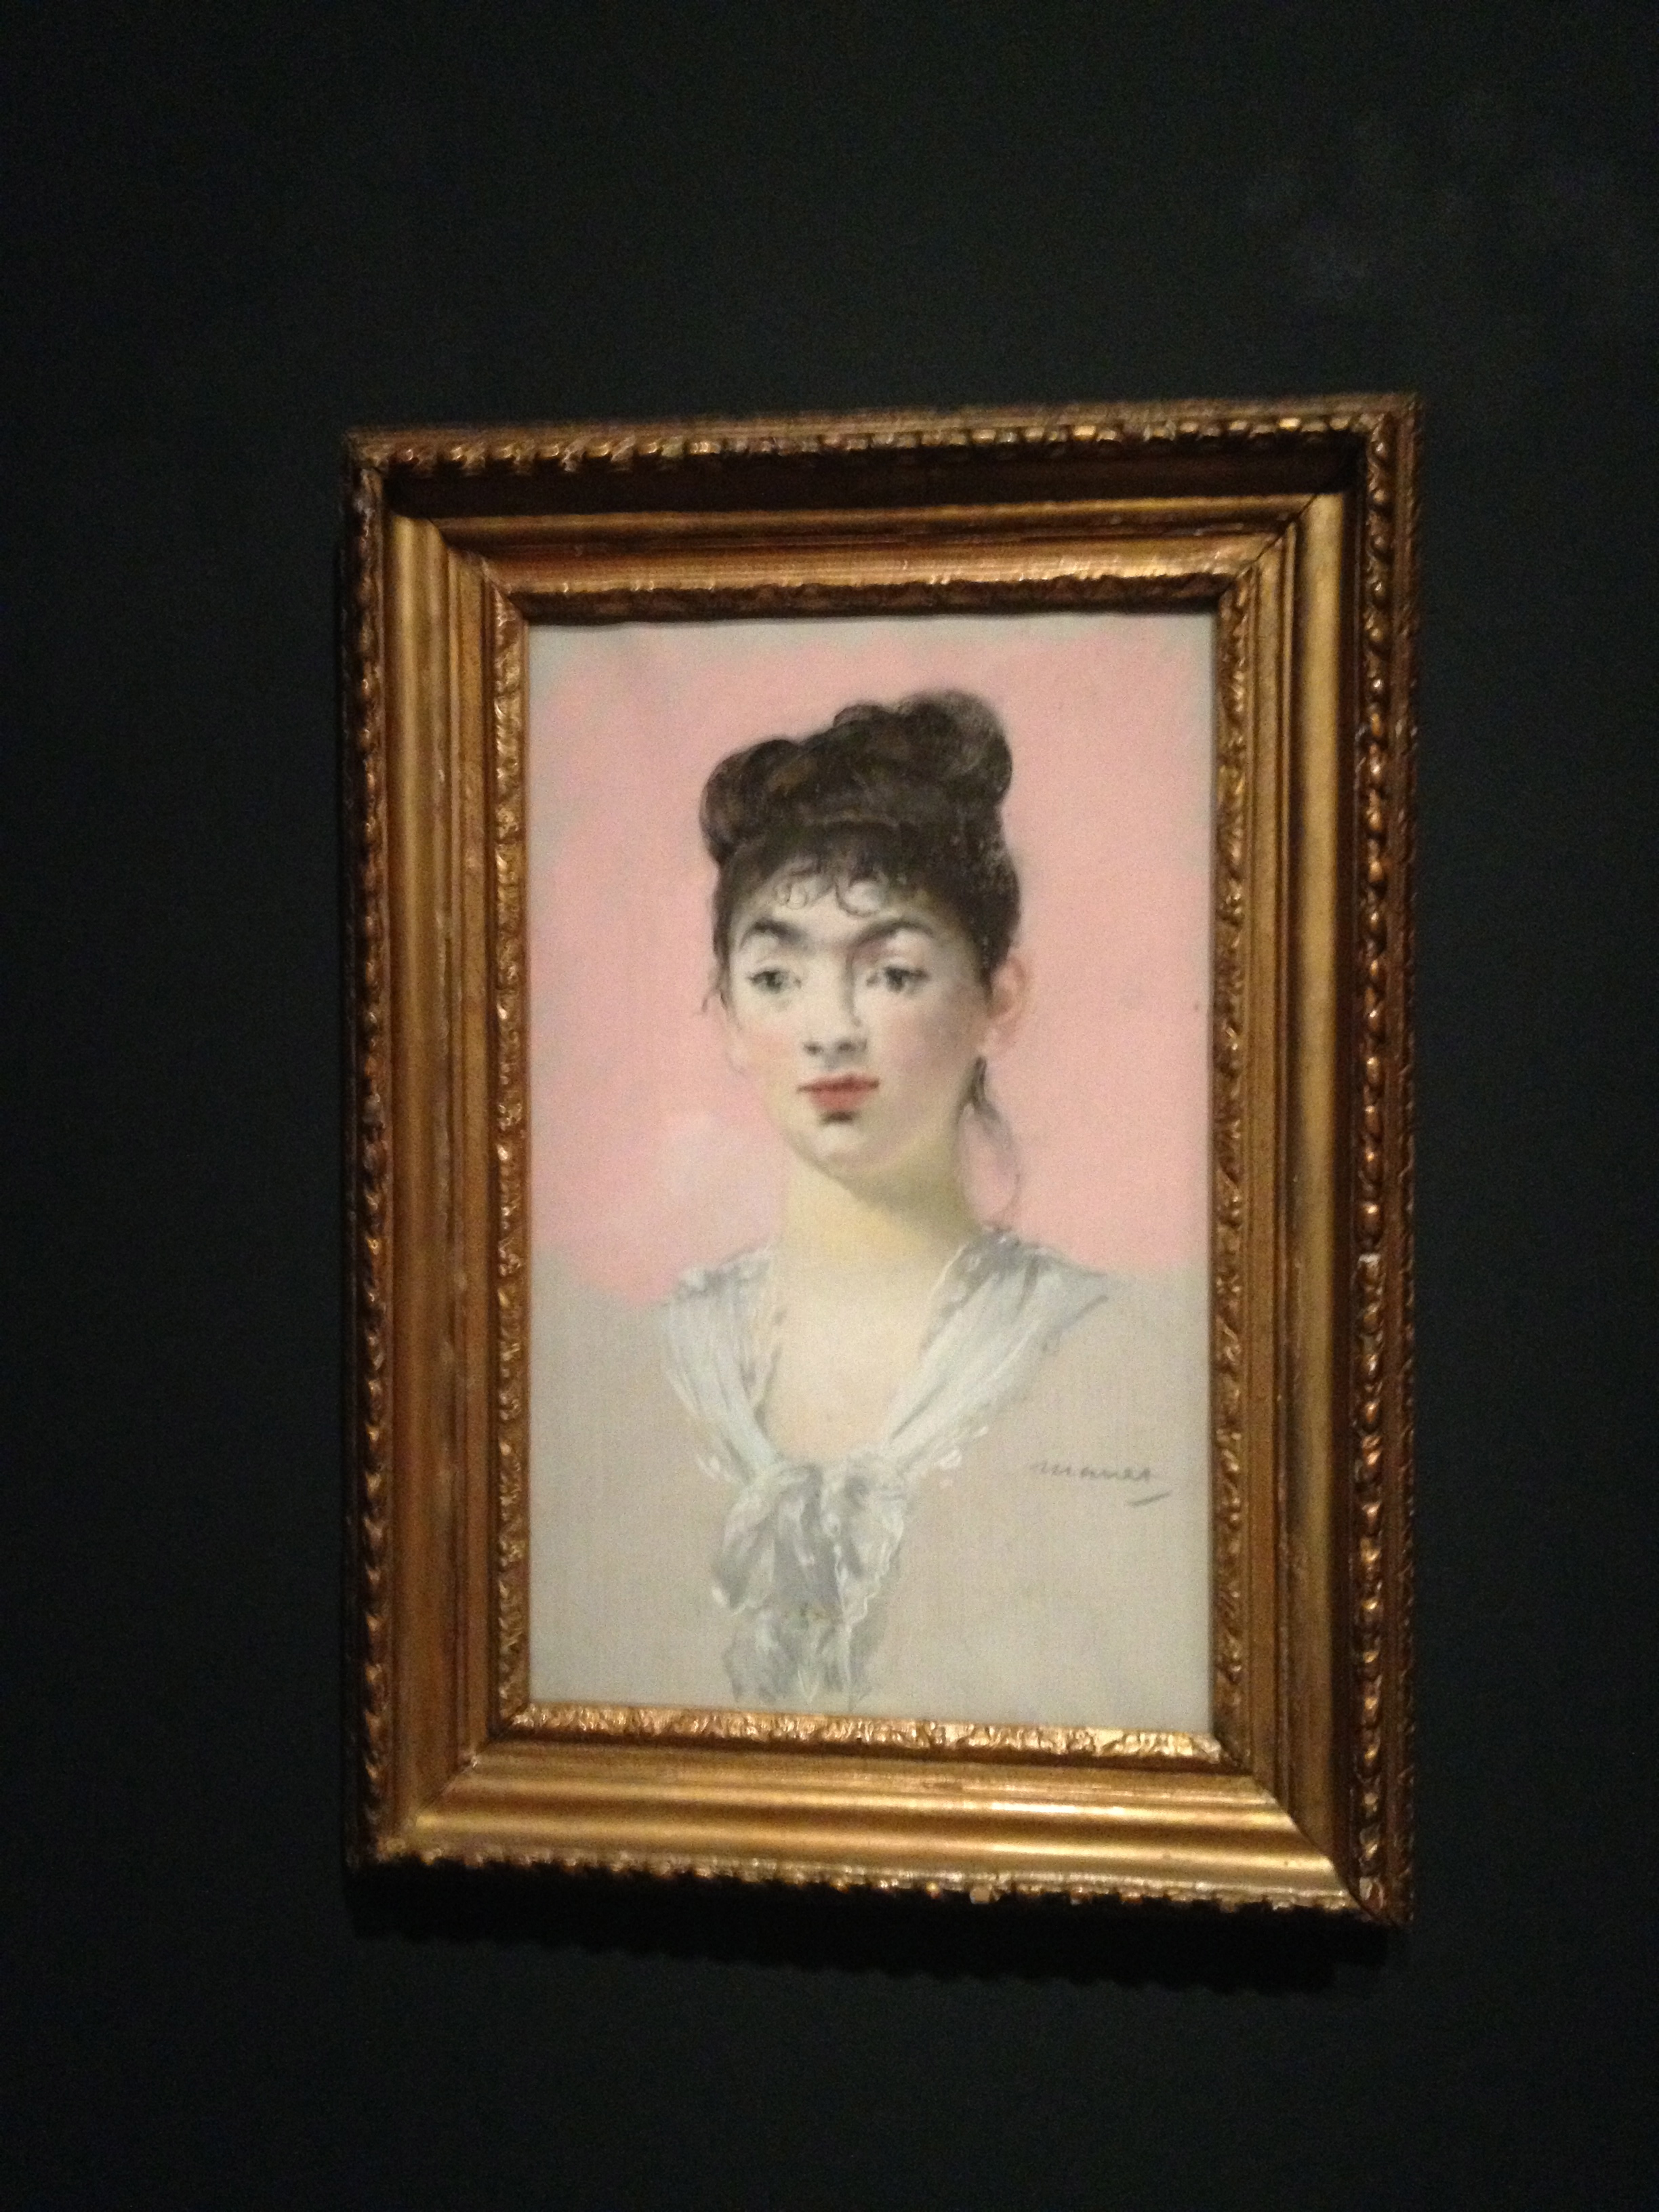 Mlle Suzette Lemaire- Full Face, 1880/81. Private collection. On long term loan to the Ashmolean Museum, Oxford.